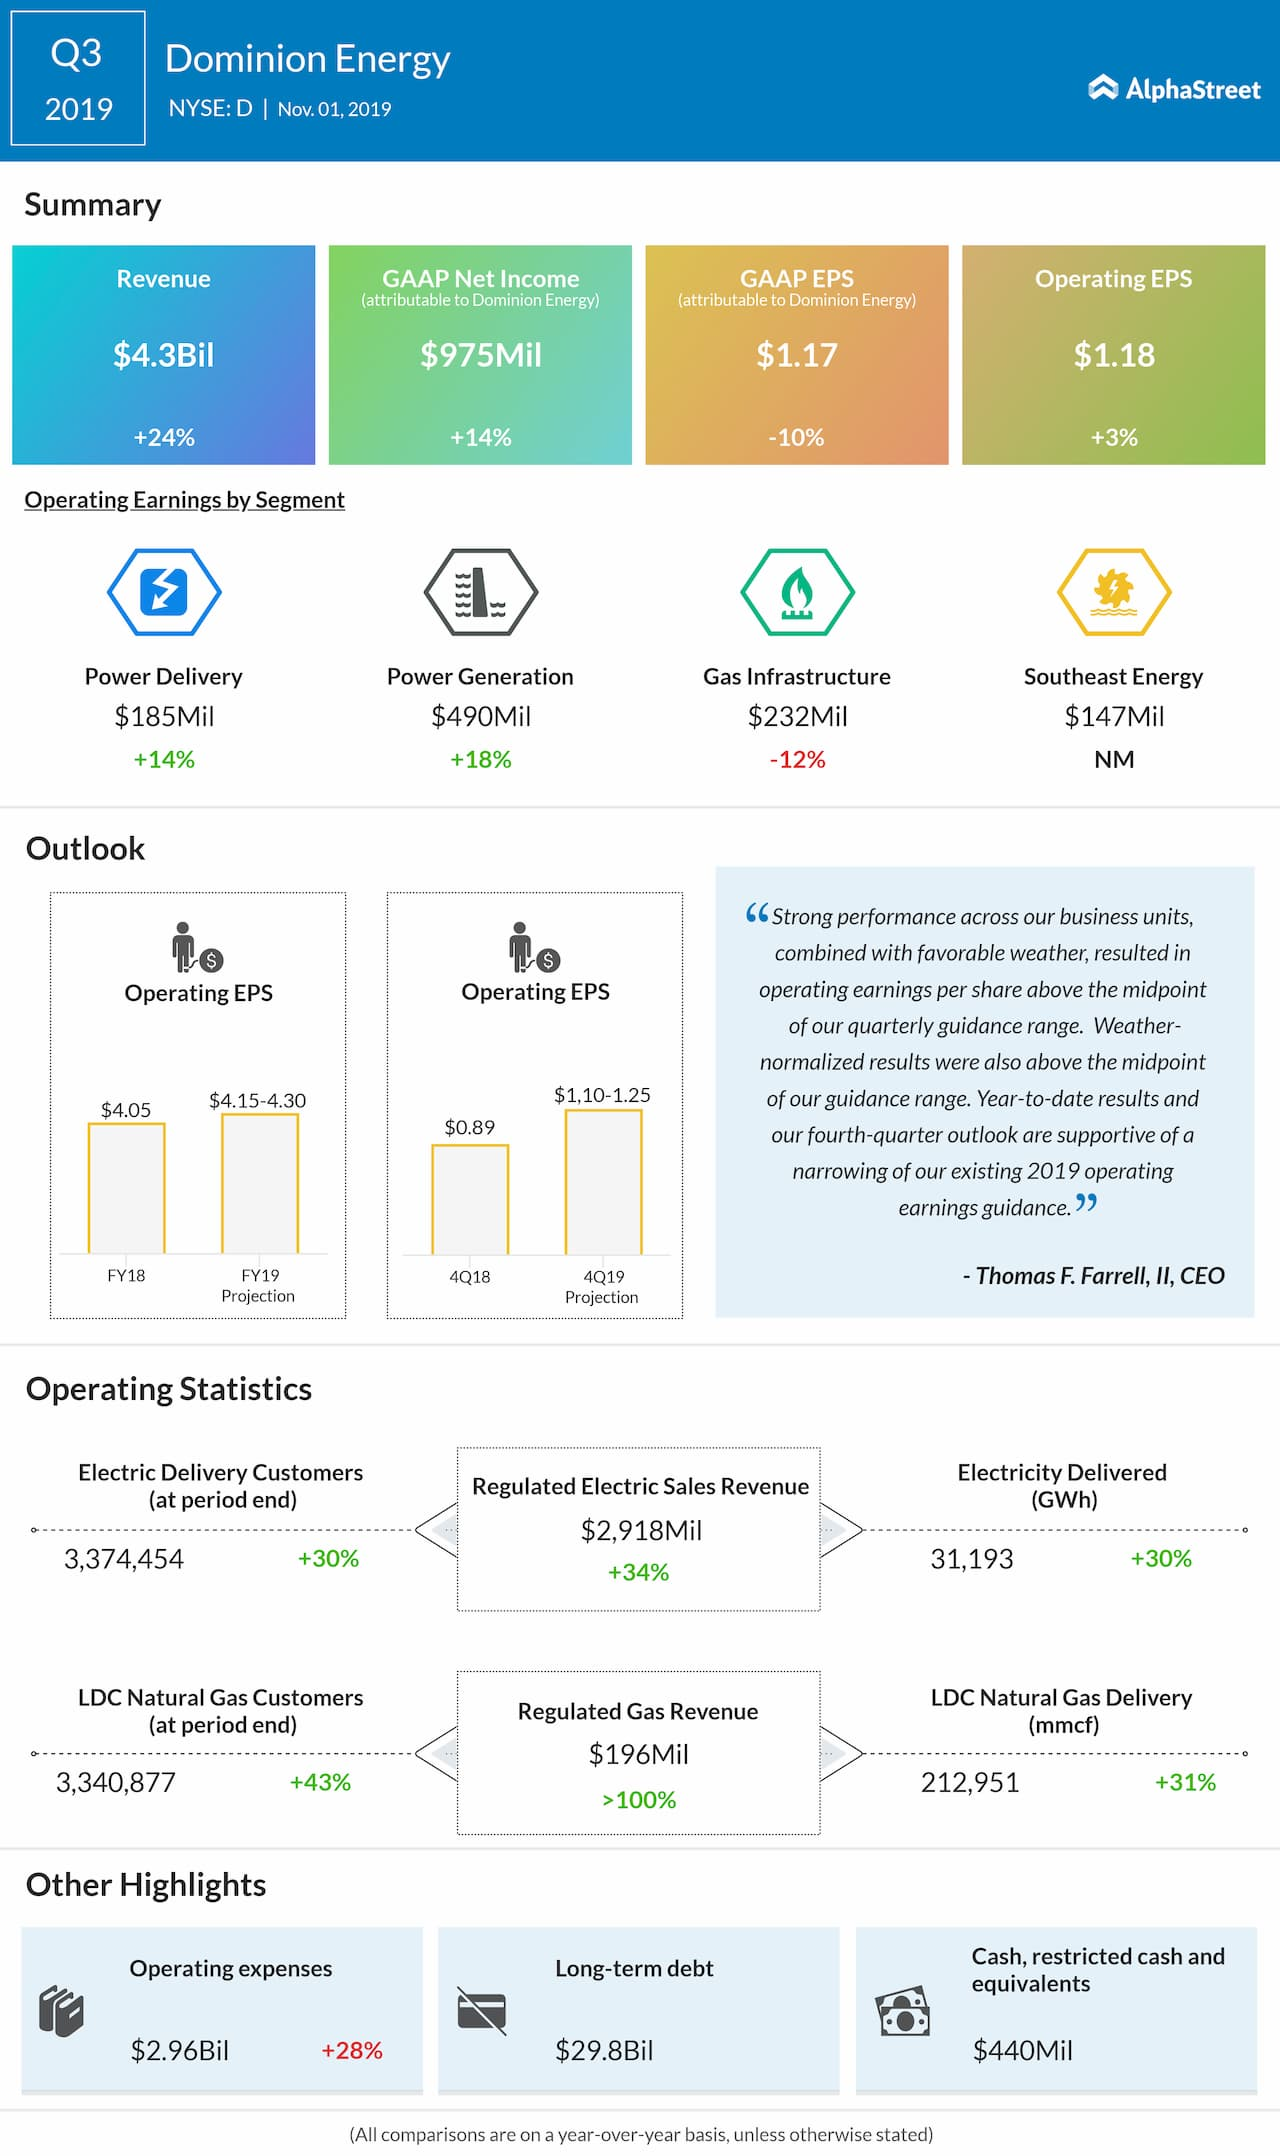 Dominion Energy (NYSE: D) Q3 2019 Earnings Snapshot